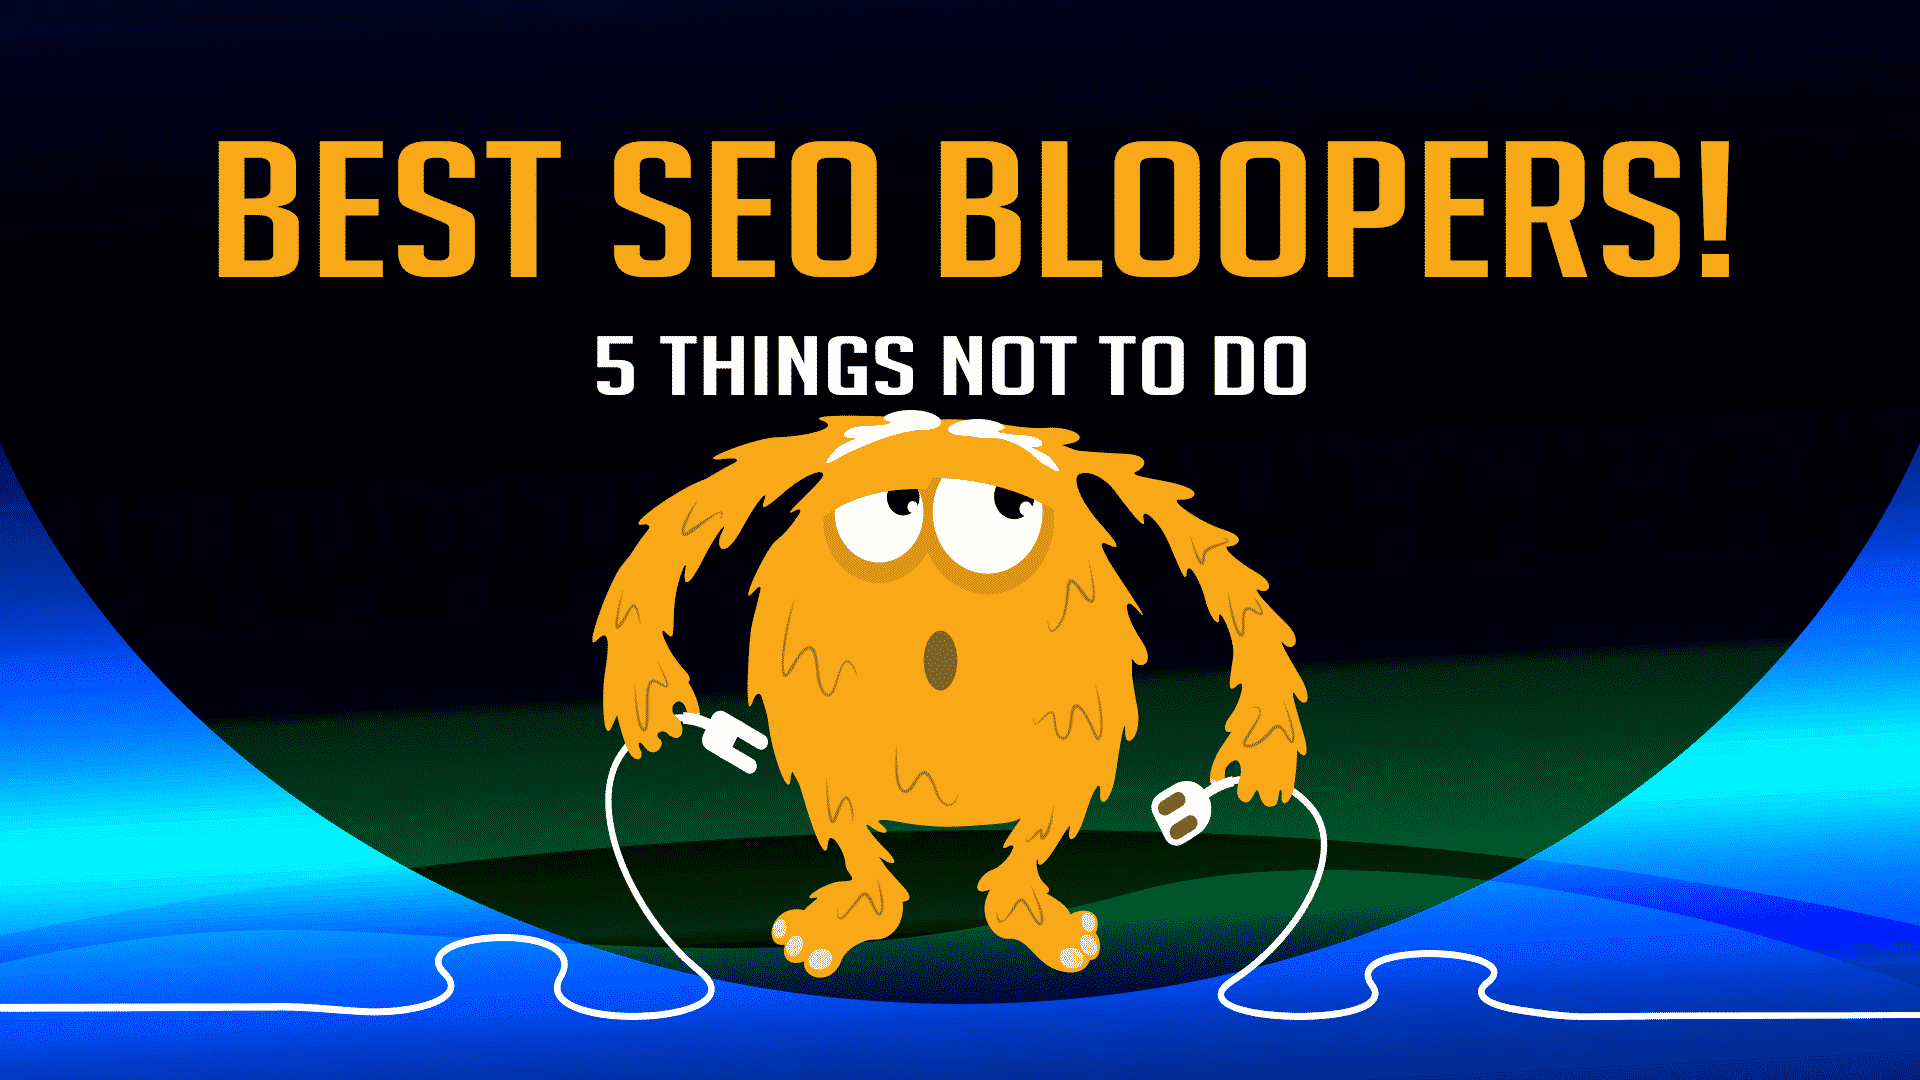 Best SEO Bloopers! - confused monster holding unplugged cords